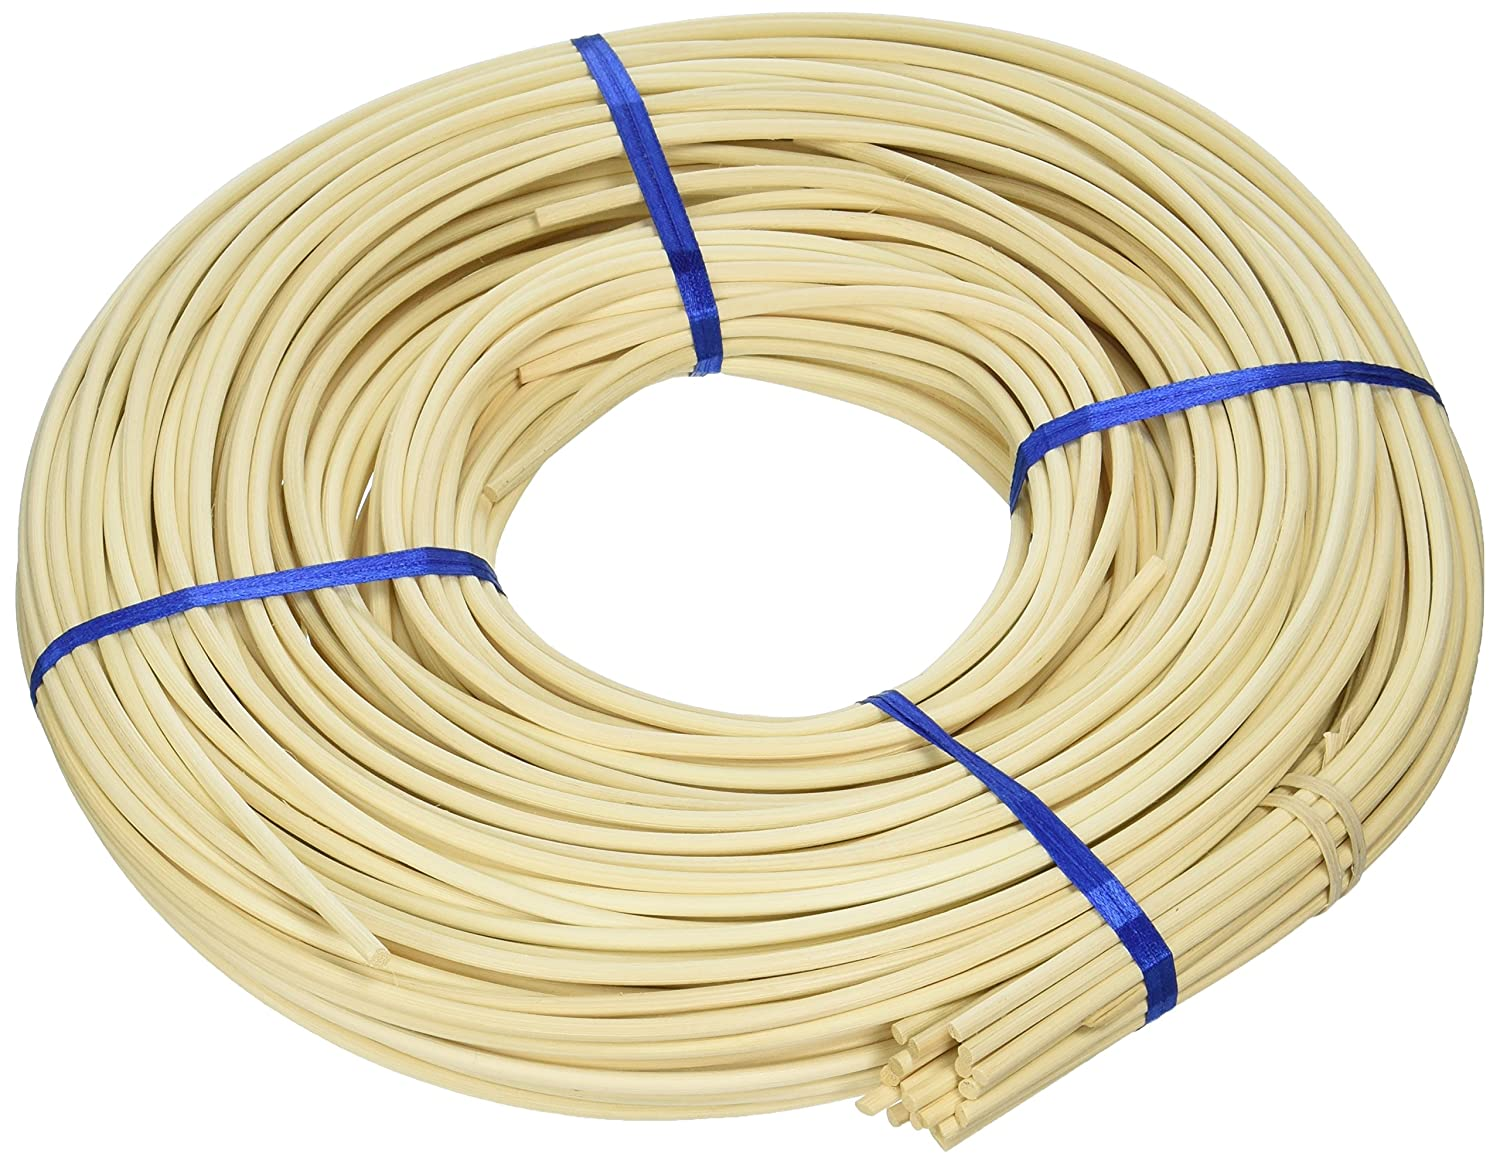 Commonwealth Basket Round Reed #6 4-1/4, 4-1/2mm 1-Pound Coil, Approximately, 160-Feet 6RR